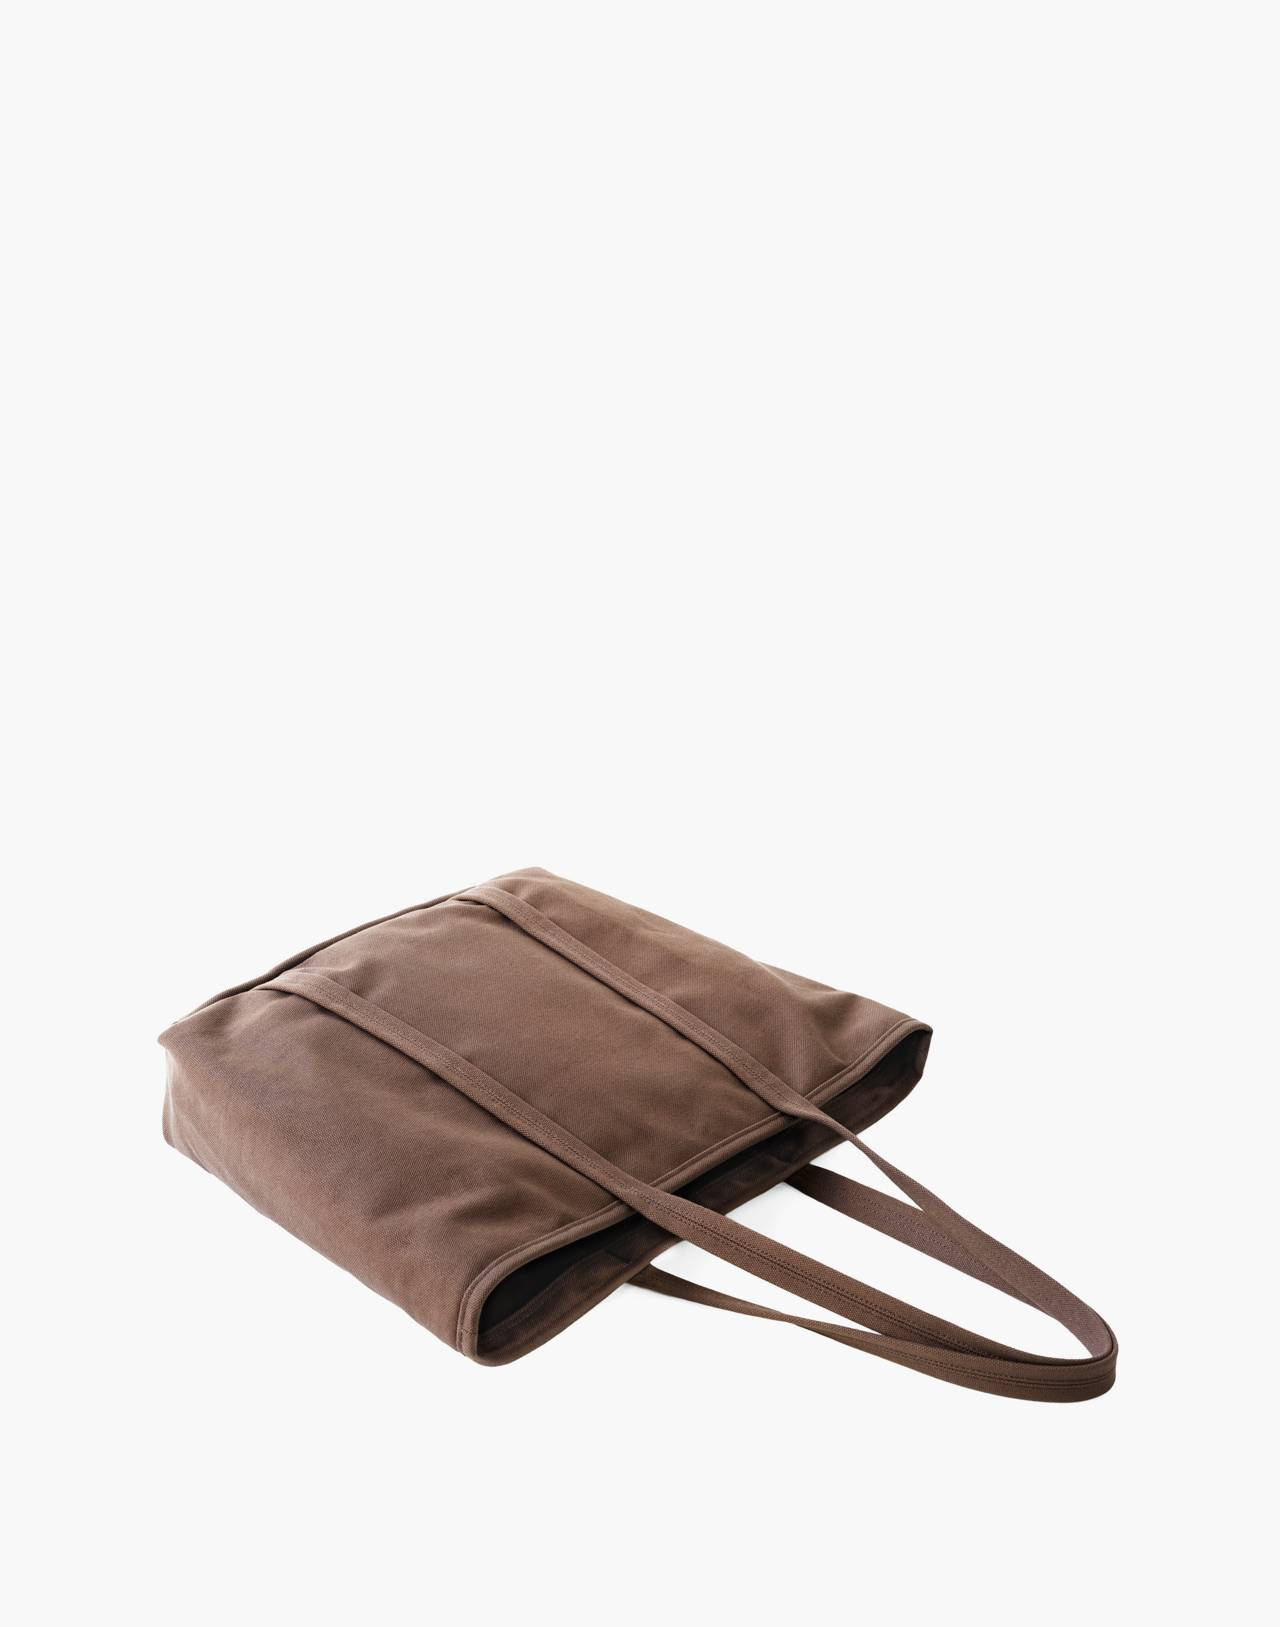 MAKR Canvas Day Tote Bag in brown image 2